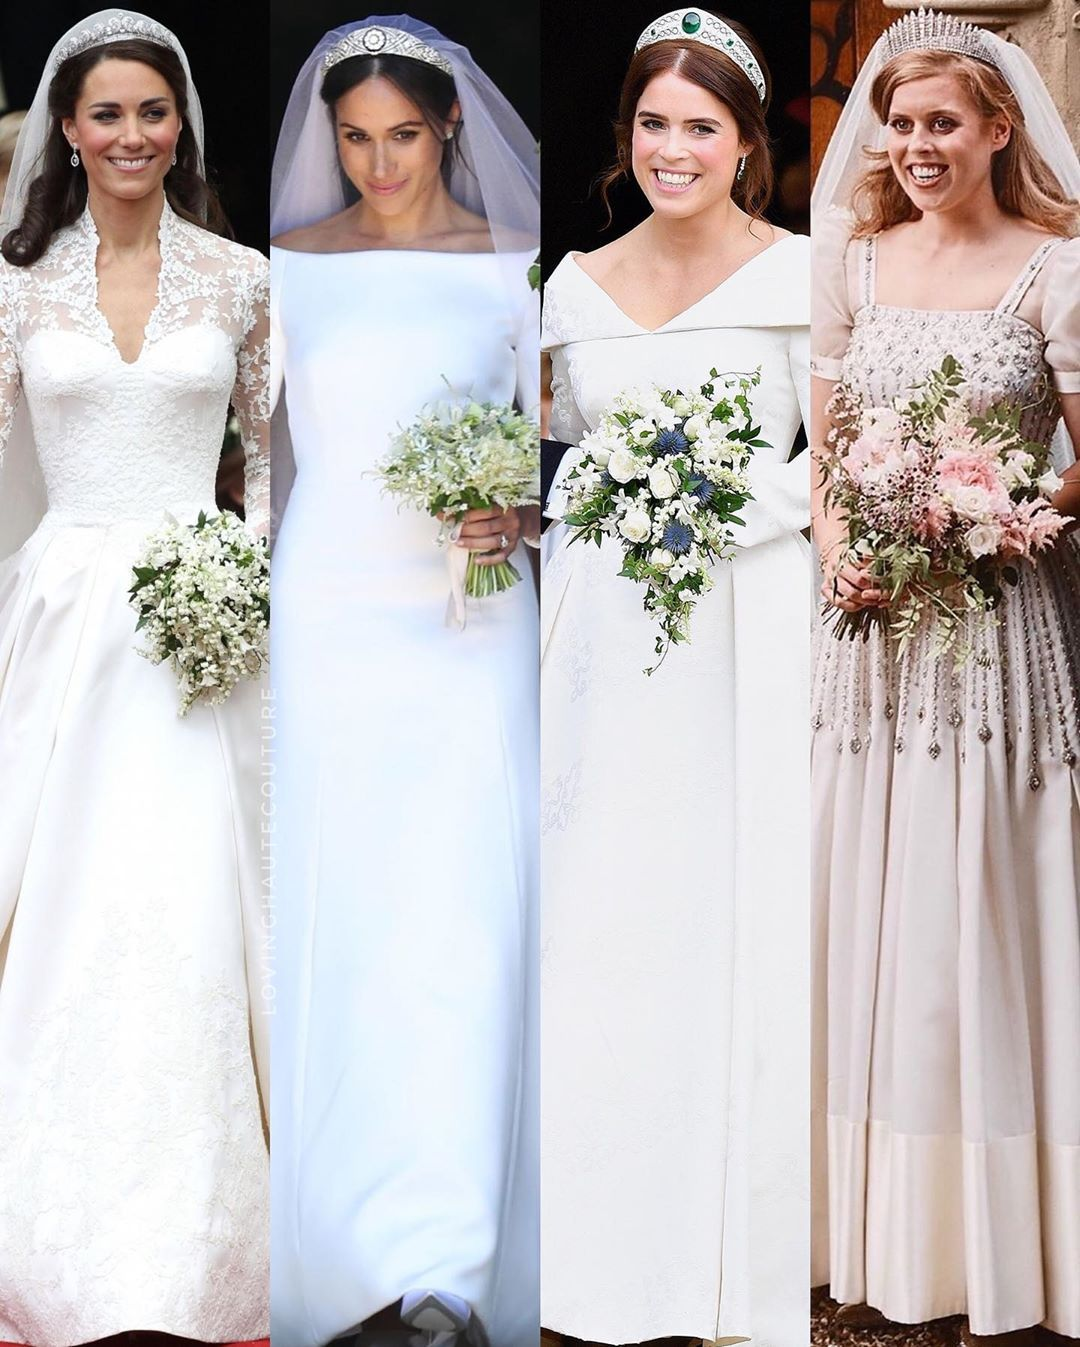 Loving Haute Couture Lovinghautecouture Added A Photo To Their Instagram Account Royal Bridal Look In 2020 Royal Wedding Dress Royal Wedding Gowns Royal Brides